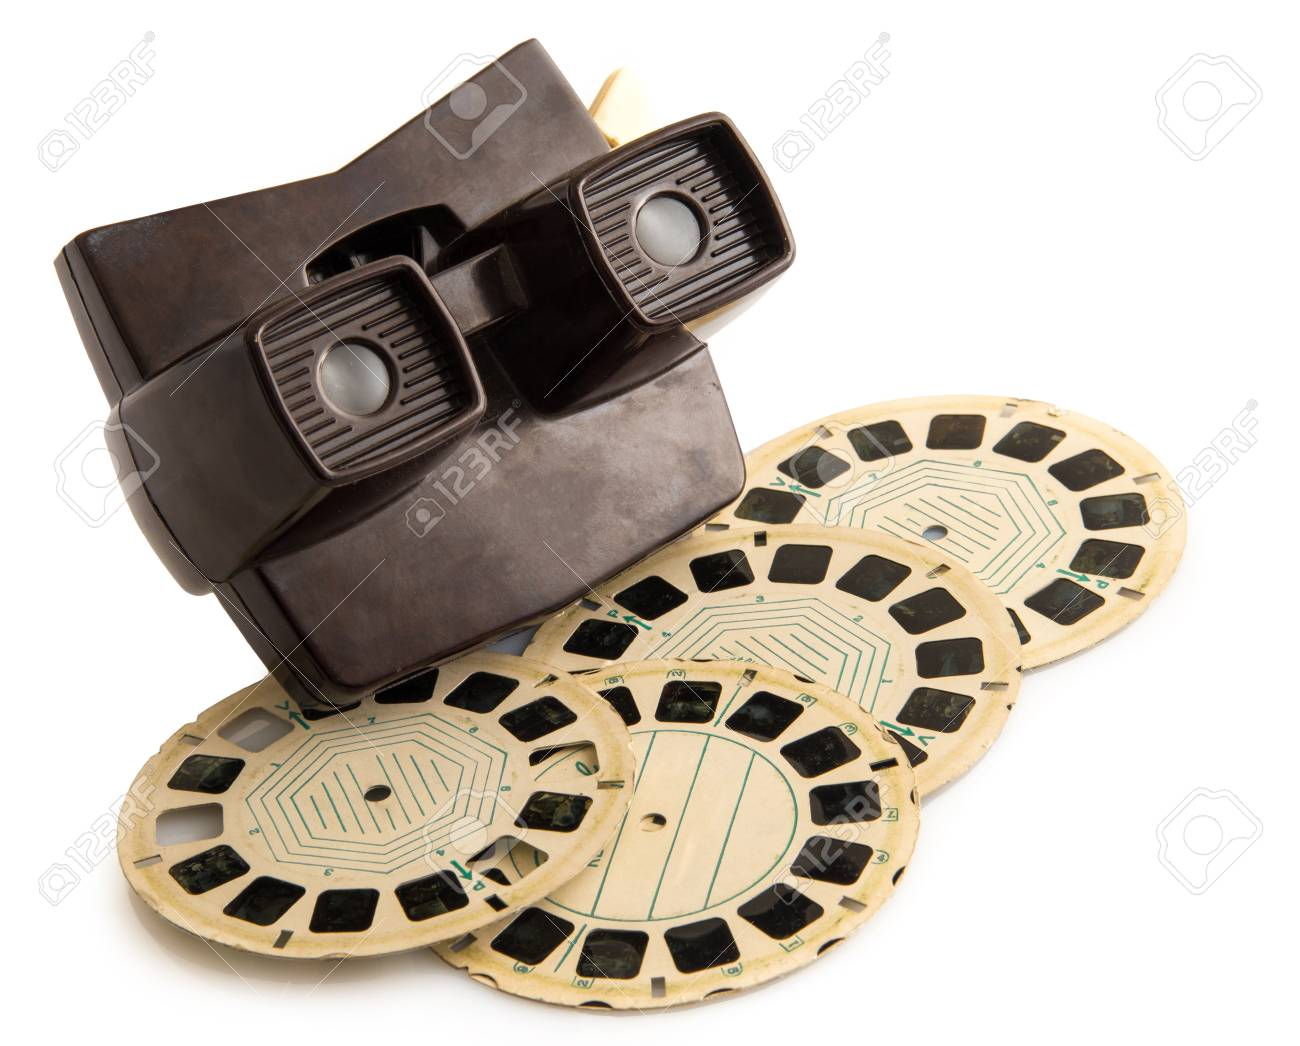 85707652-old-photographs-vintage-viewmaster-white-background.jpg